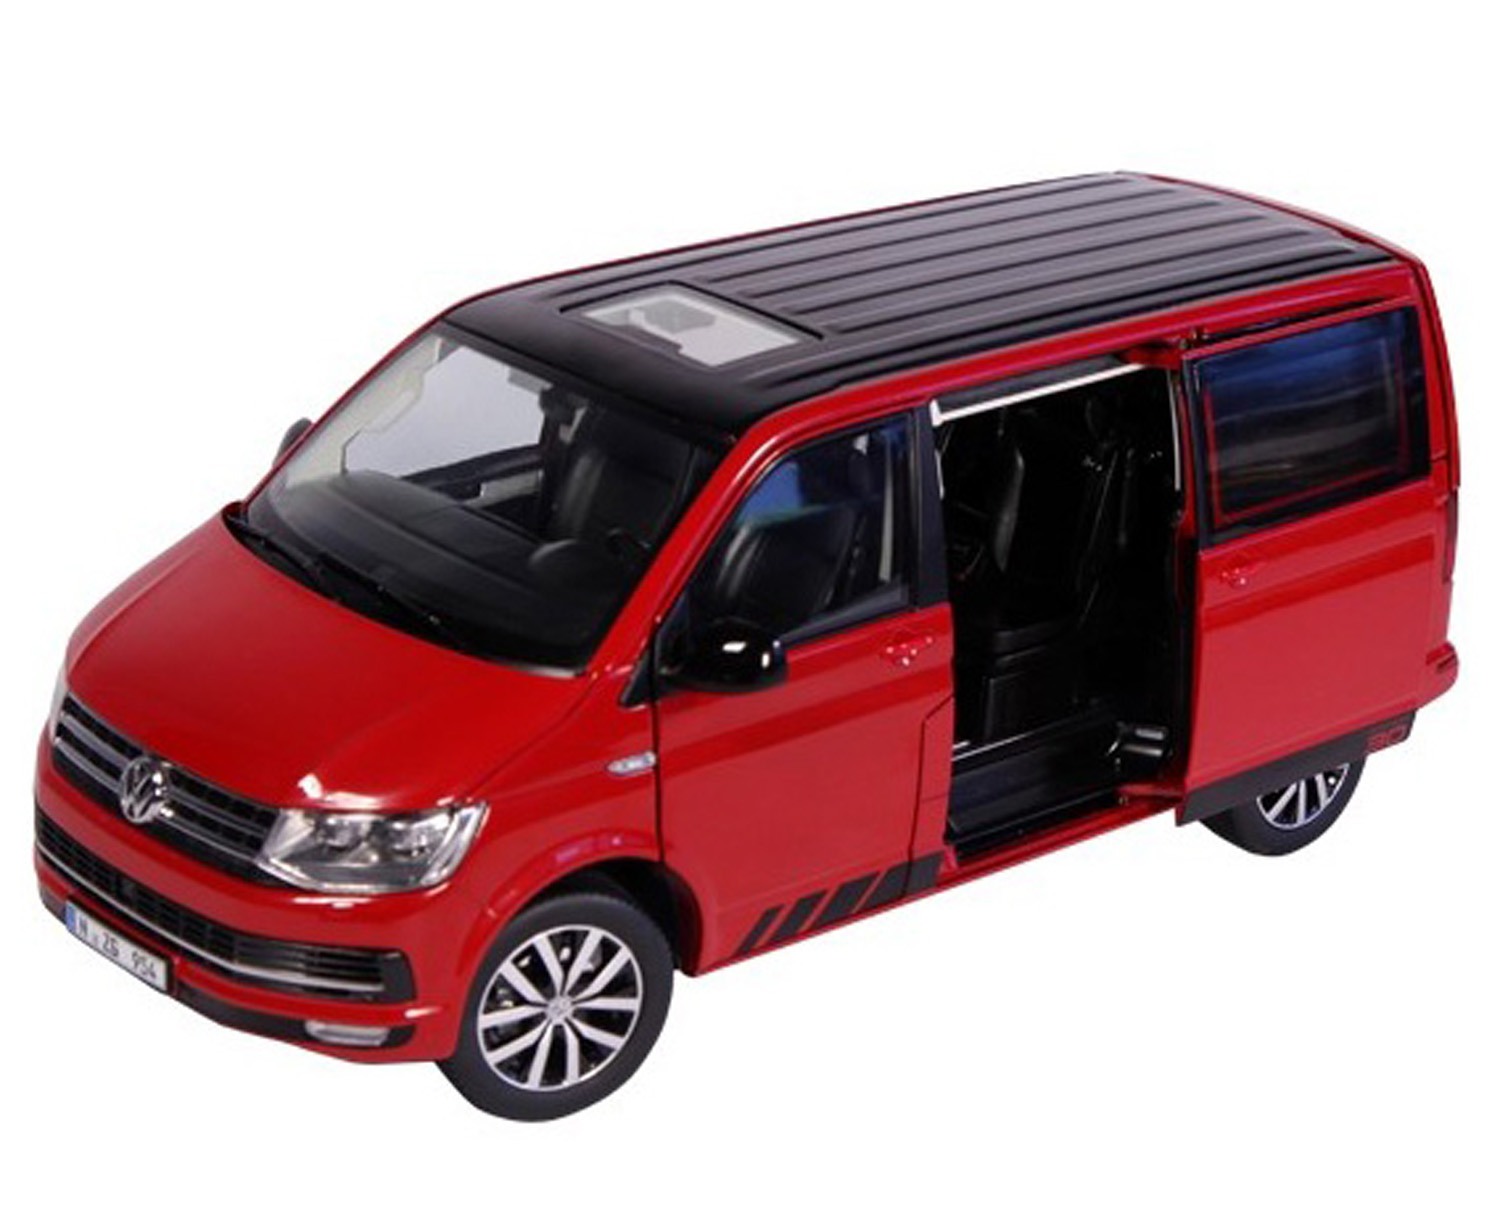 spiel modellkist 39 l shop vw t6 multivan edition 30 rot online kaufen. Black Bedroom Furniture Sets. Home Design Ideas